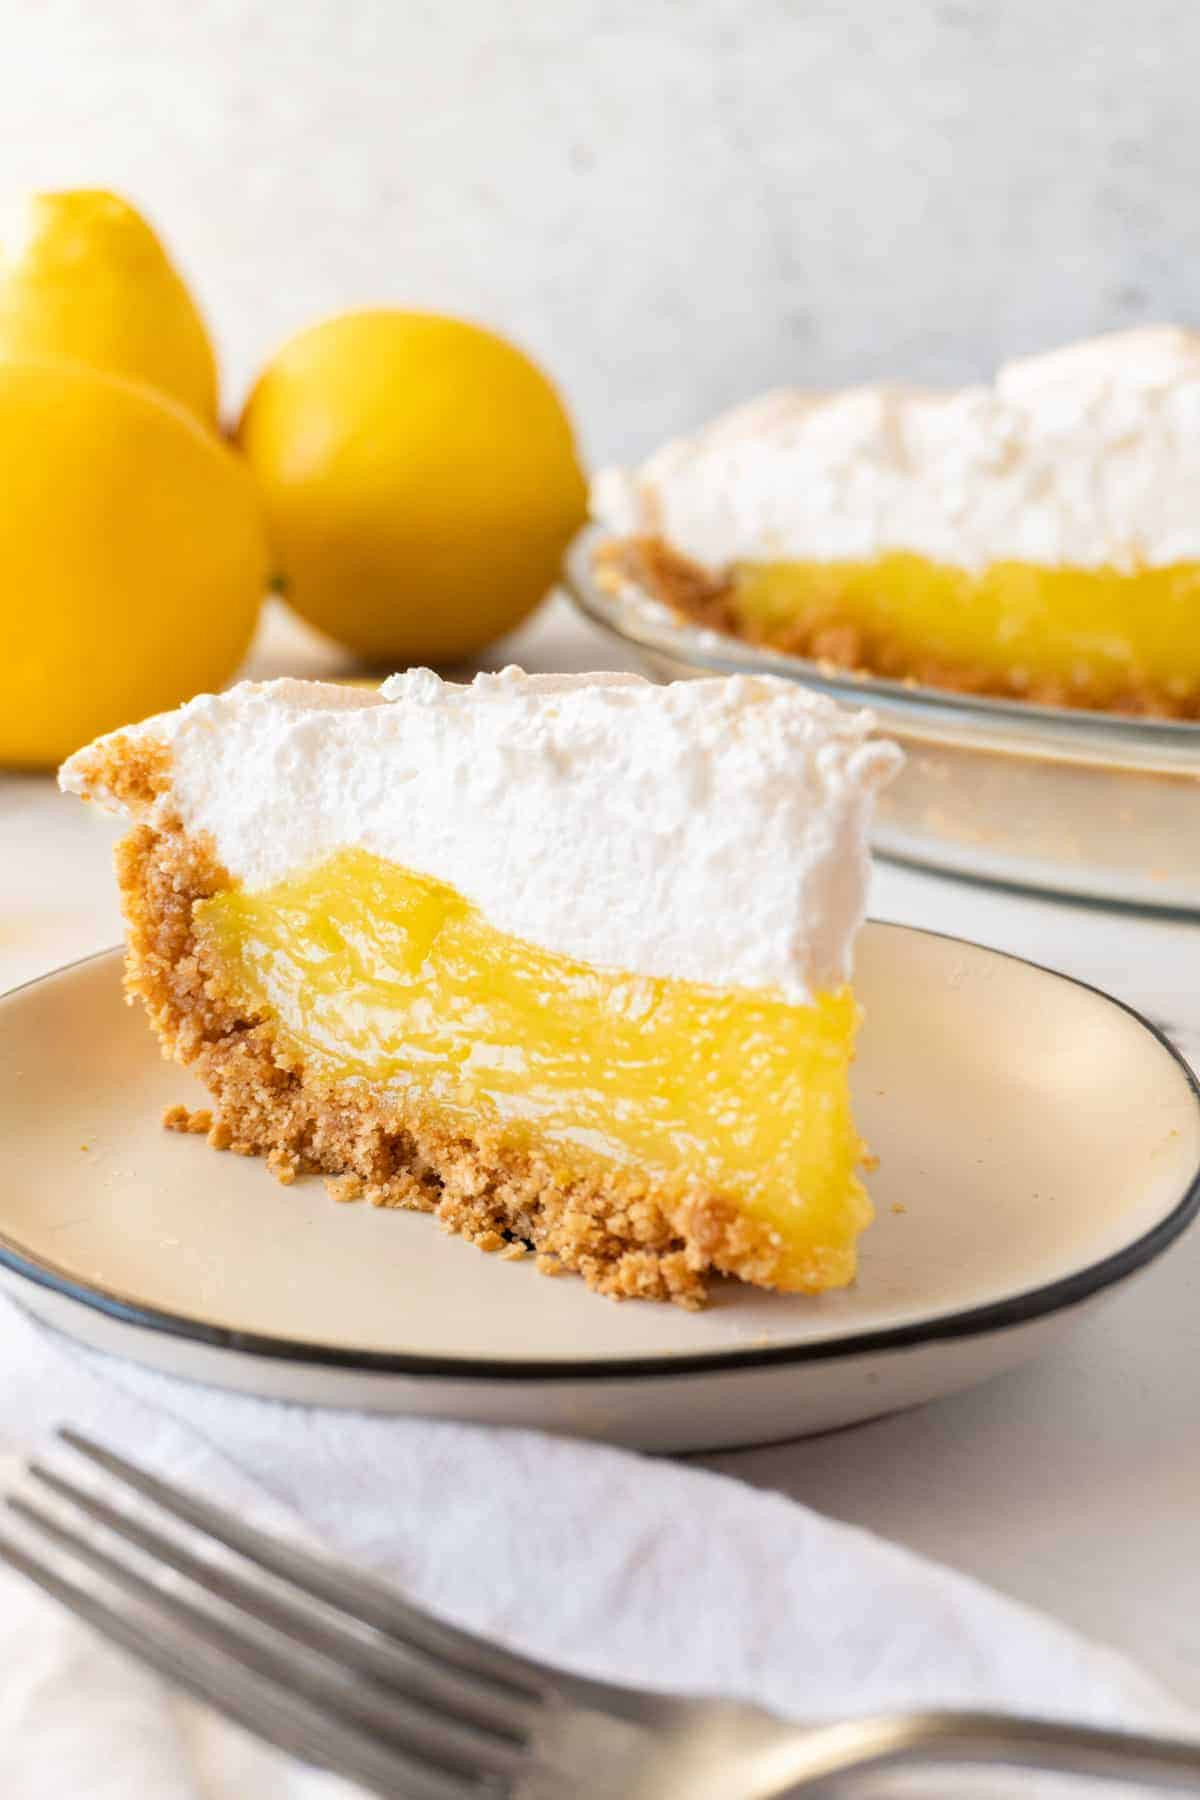 slice of lemon meringue pie with lemons and pie in the background